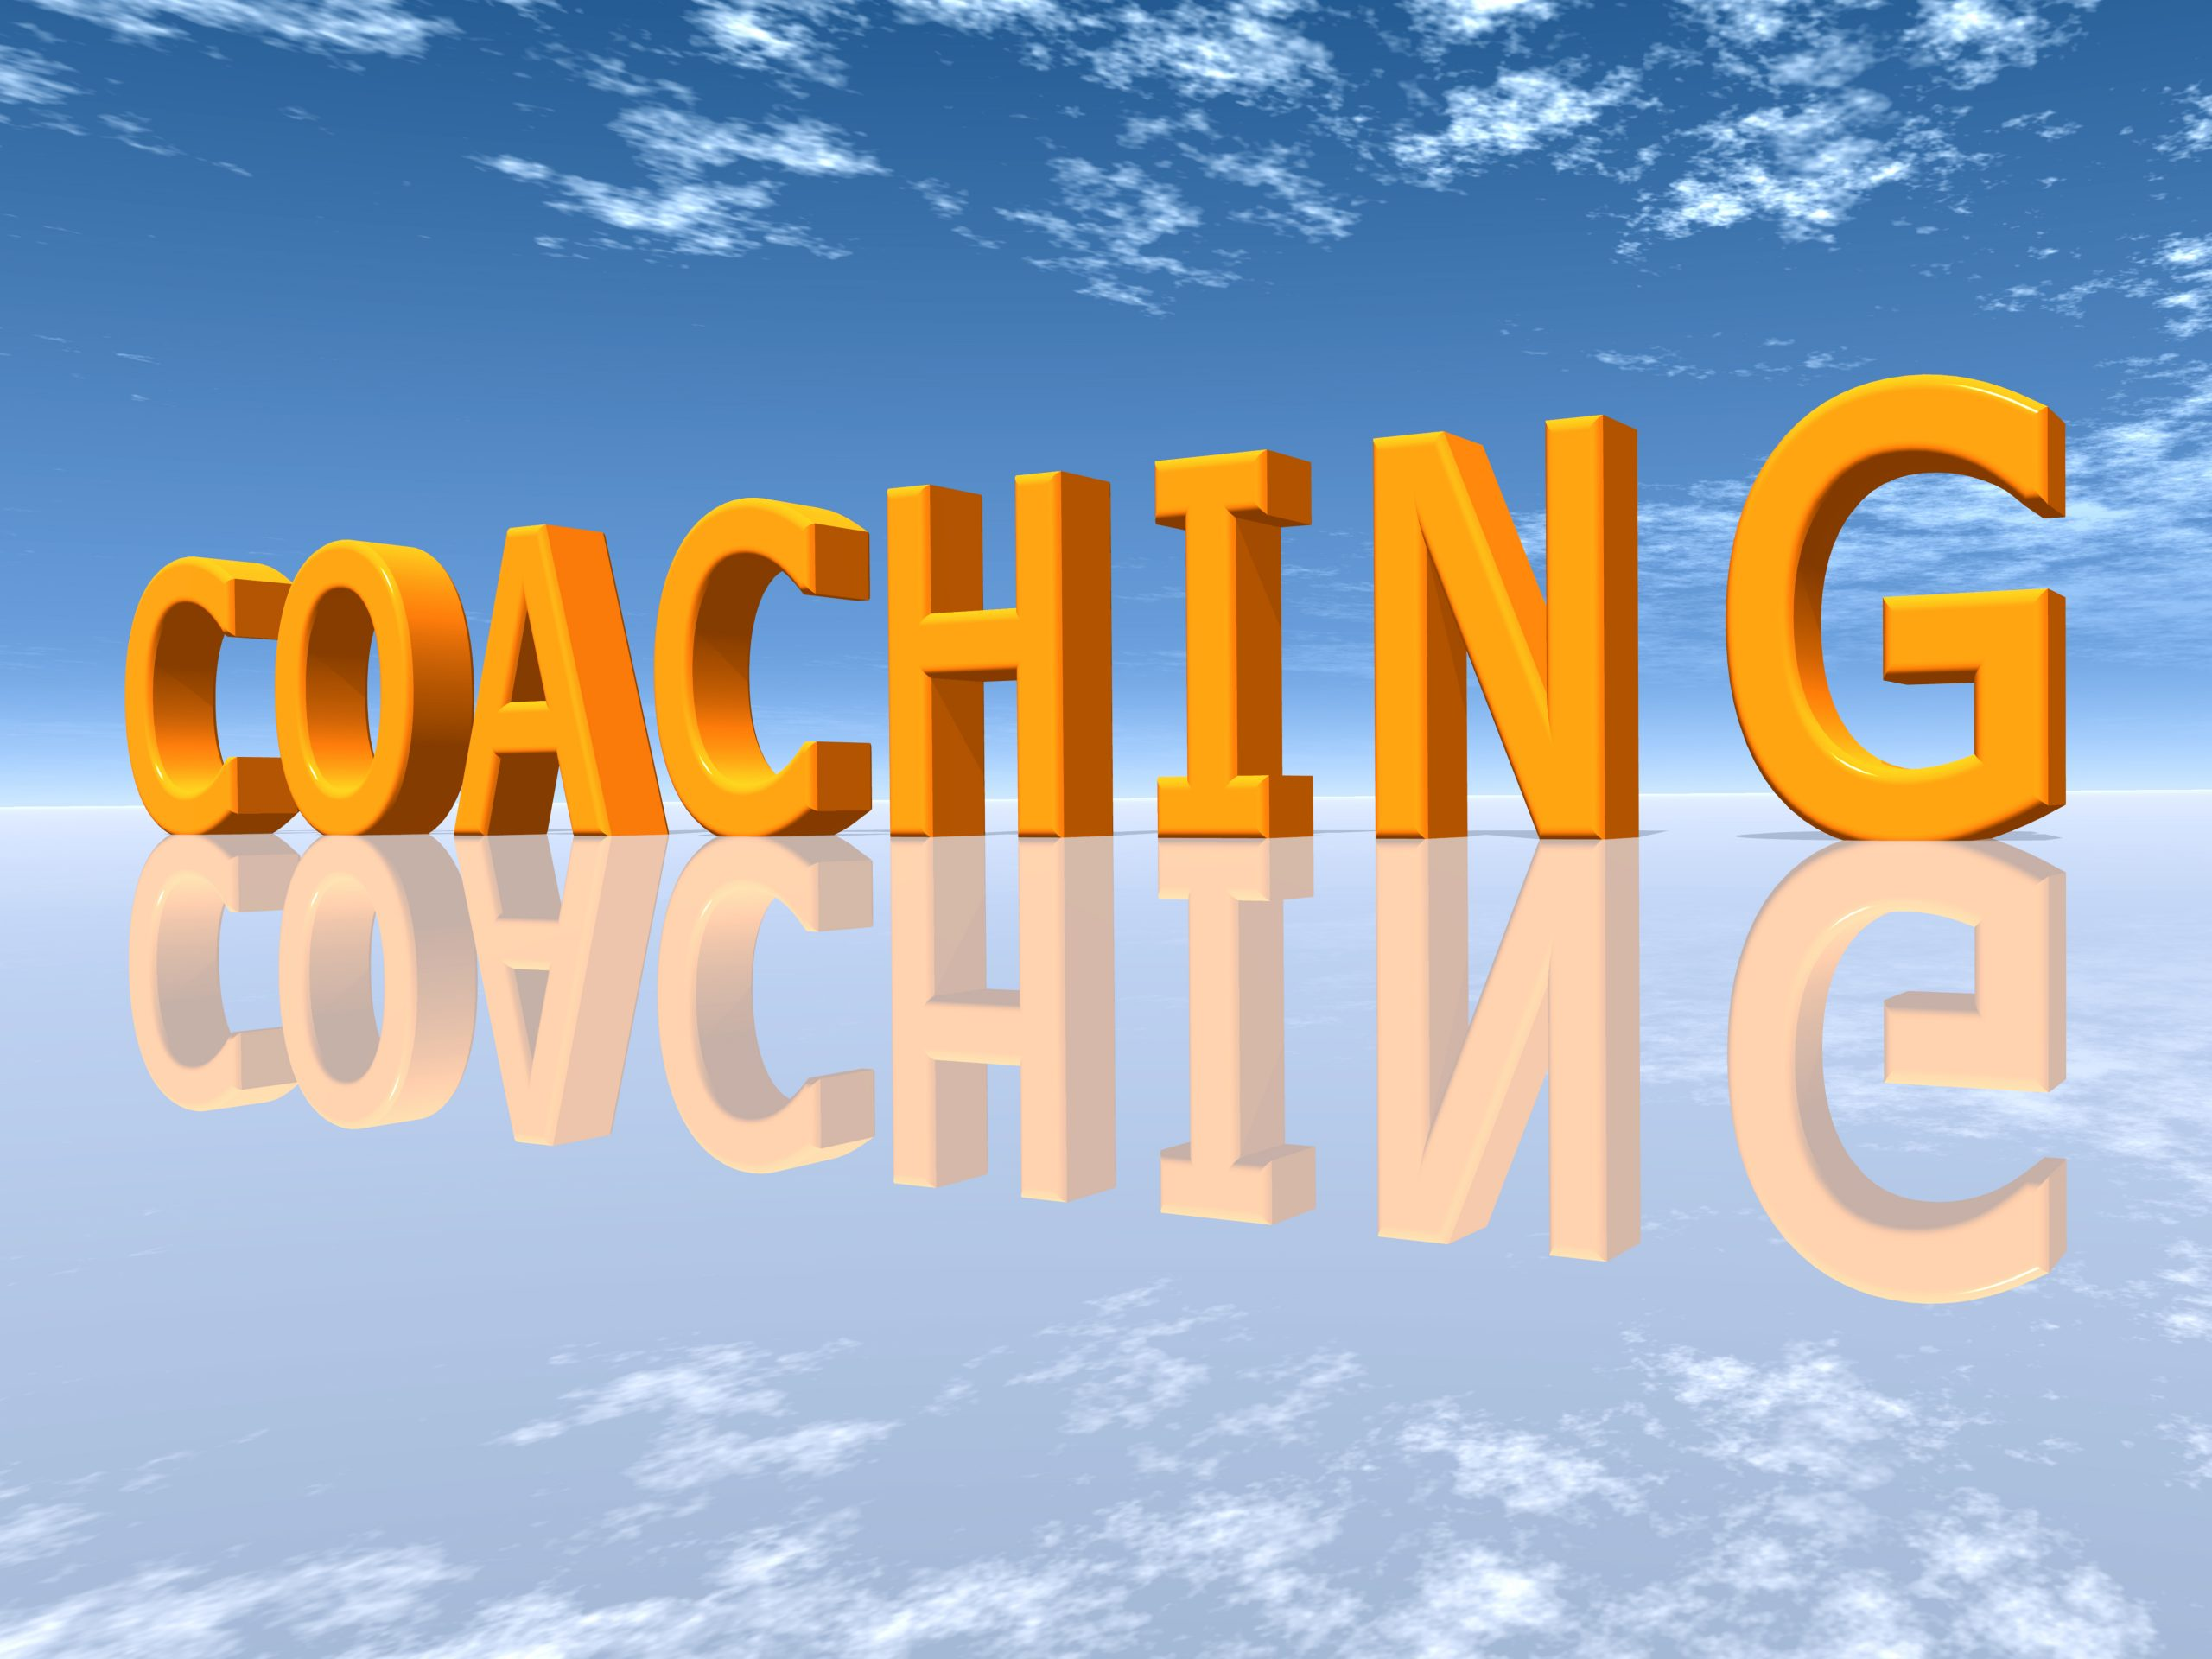 Questions for Coaching the Being and the Doing From the Carolina Coaching Mario Blog